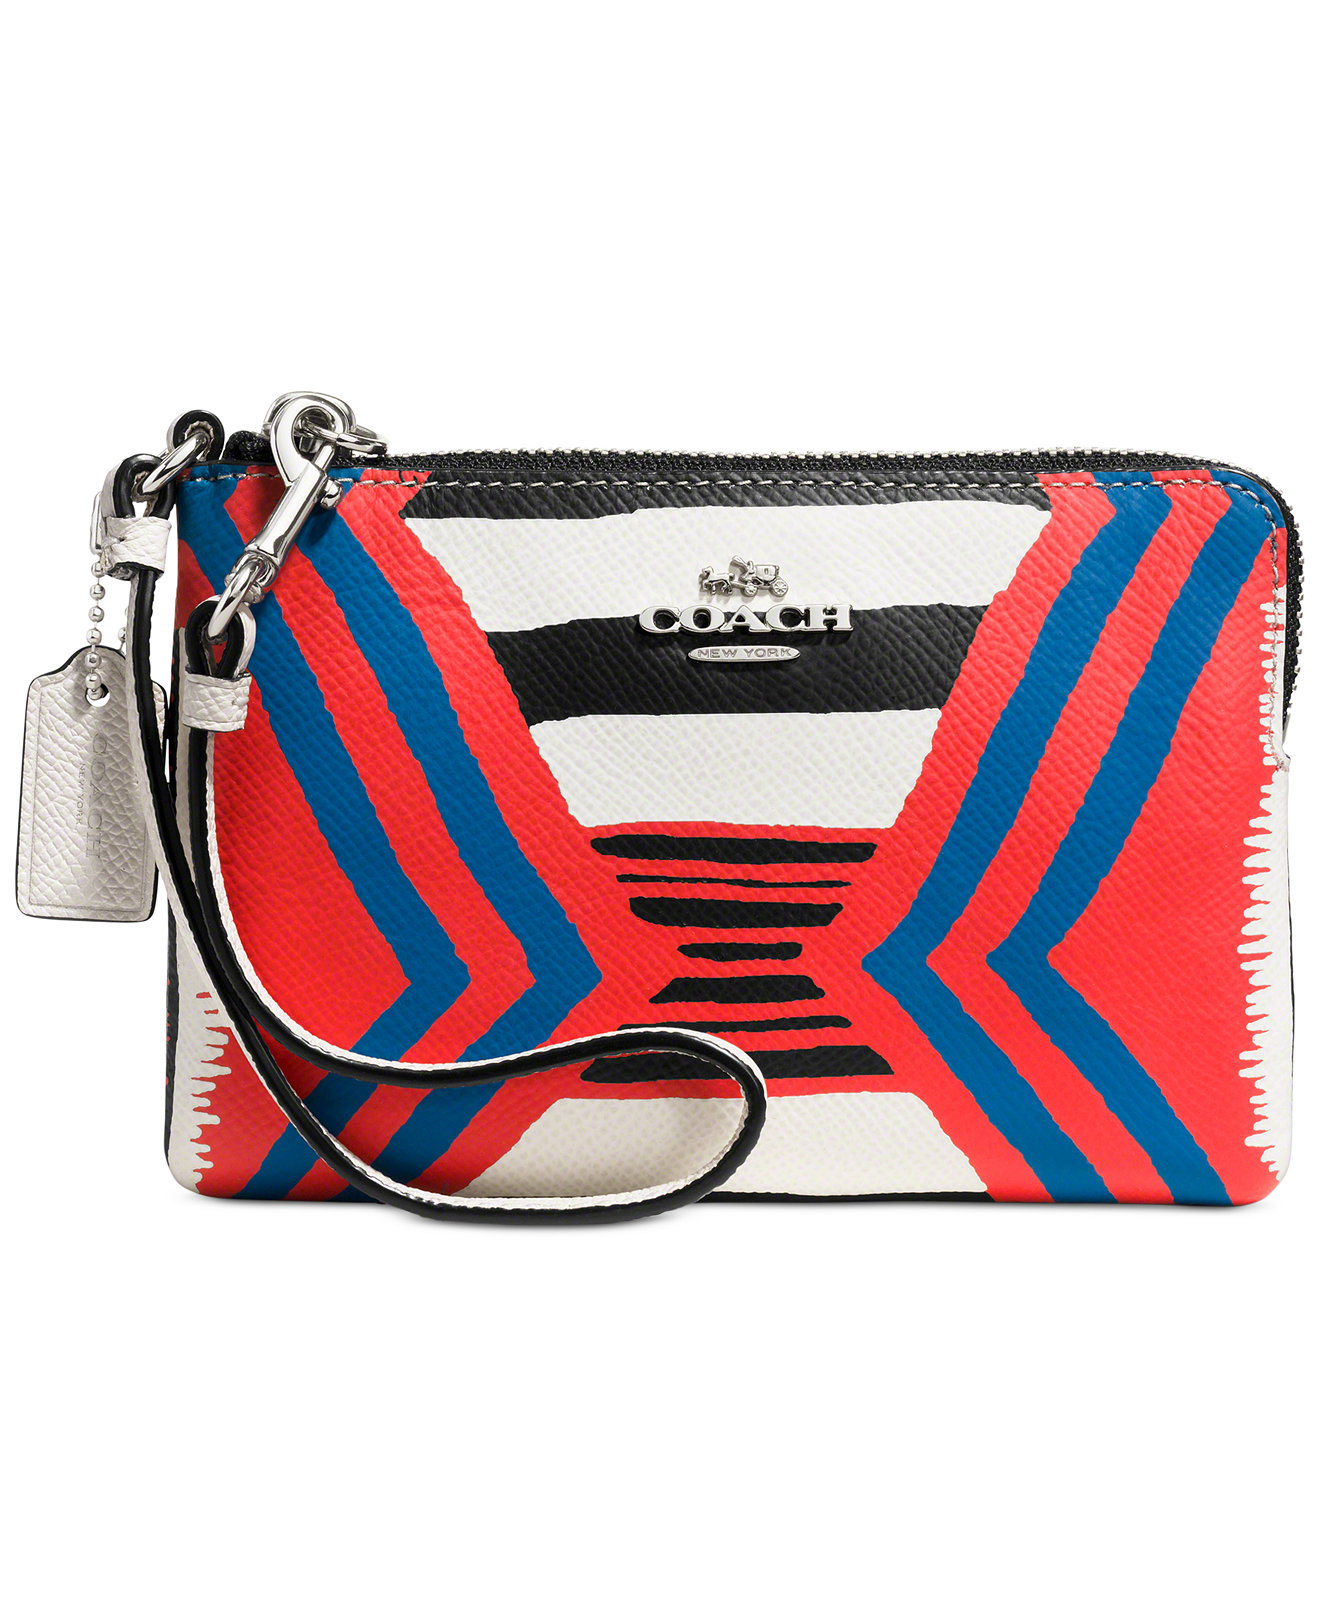 Dressy Look COACH CORNER ZIP WRISTLET IN PRINTED CROSSGRAIN LEATHER from Macys